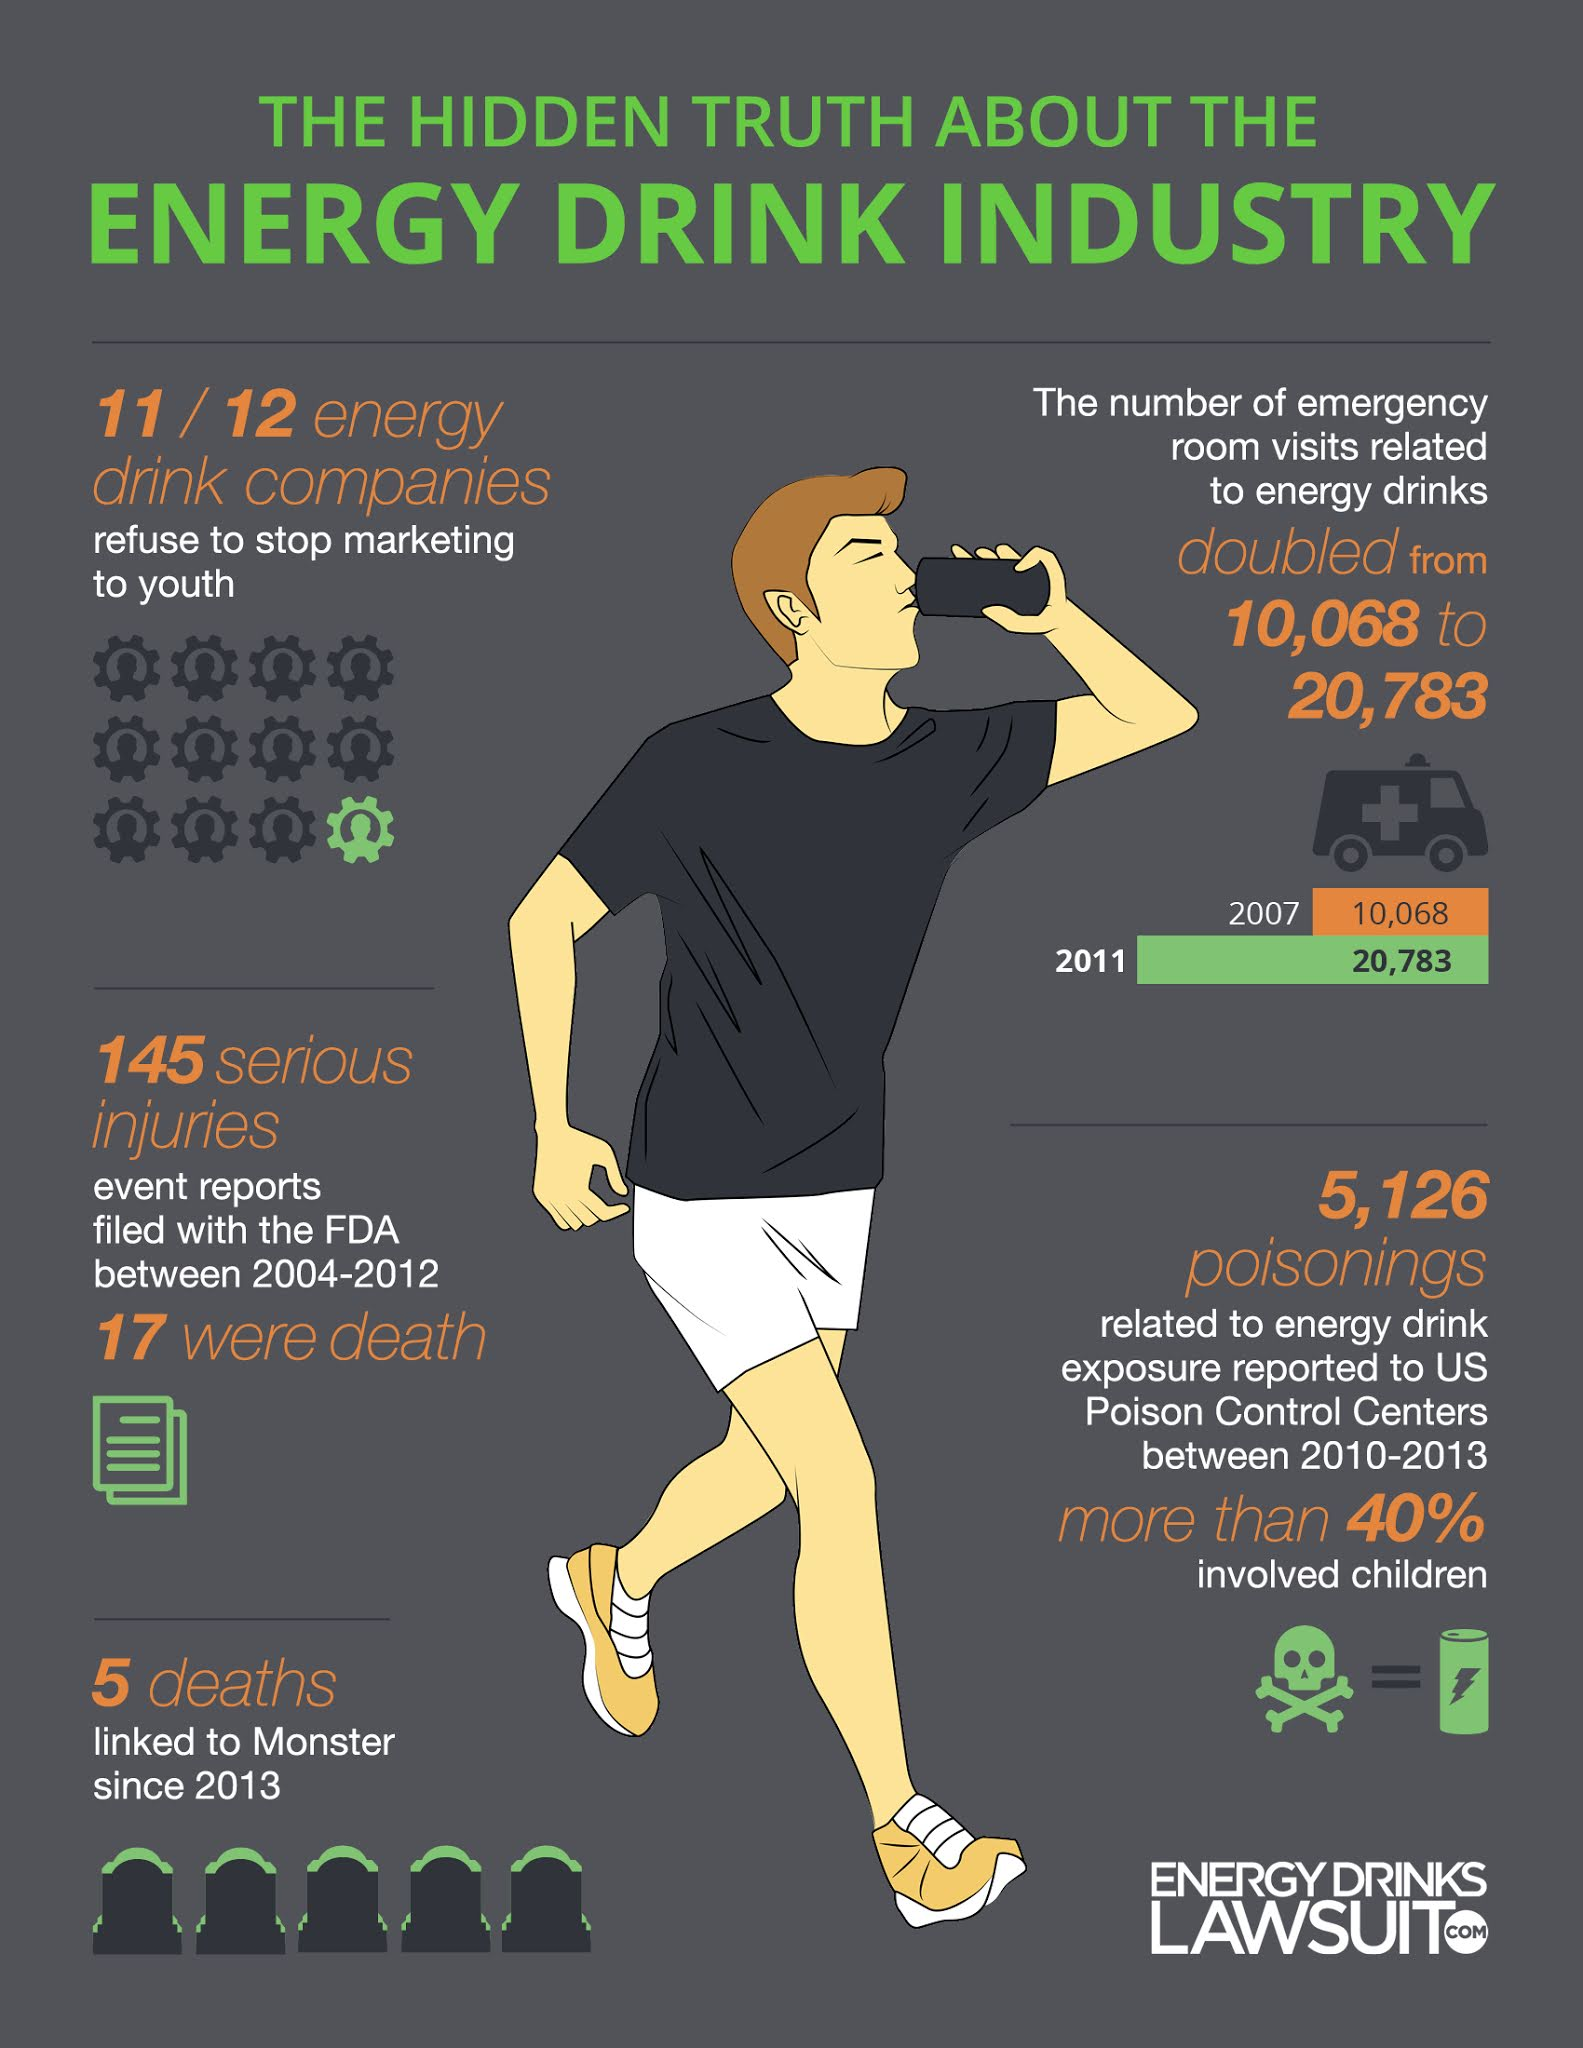 The Hidden Truth About Energy Drinks Industry #infographic #Energy Drinks #Food & Drink, #Drinks Industry